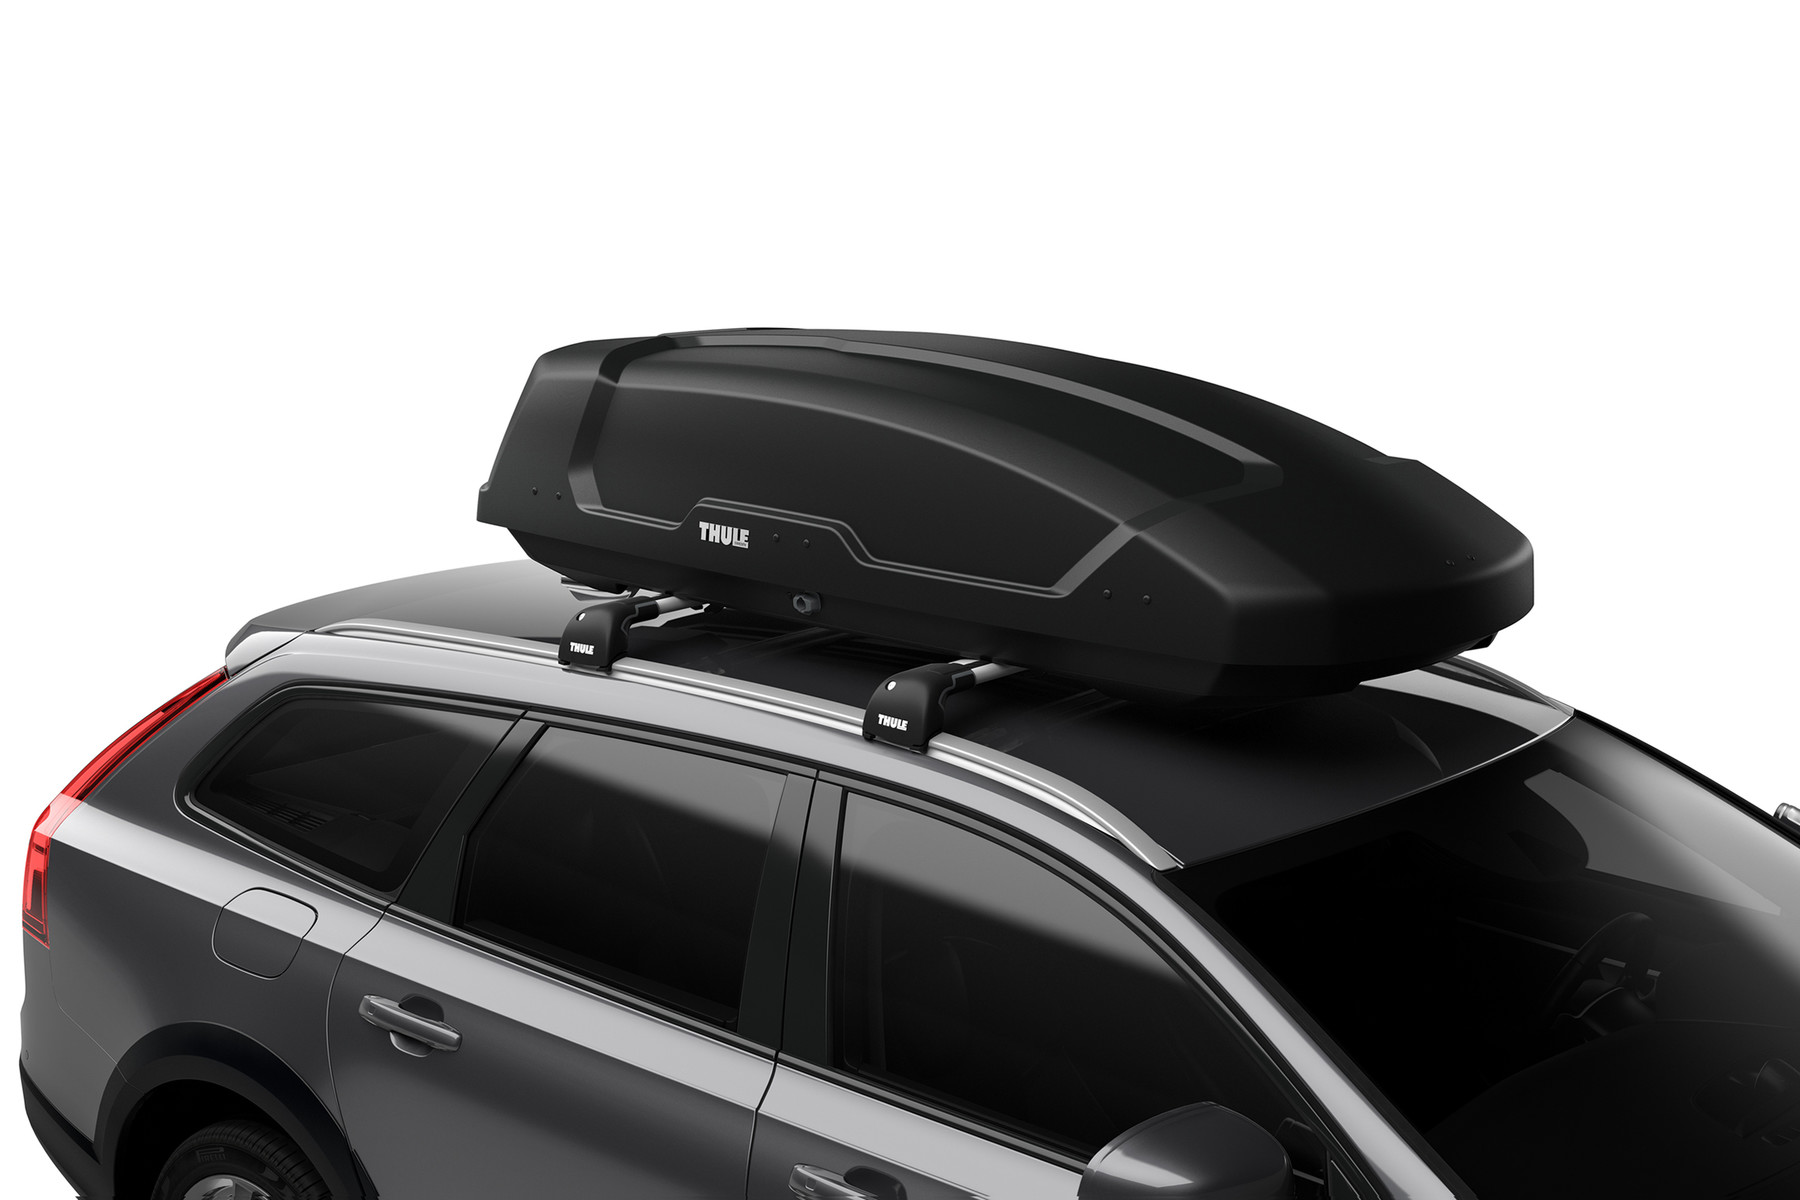 Автобокс Thule Force XT L - 450 antracite aeroskin ( под карбон )